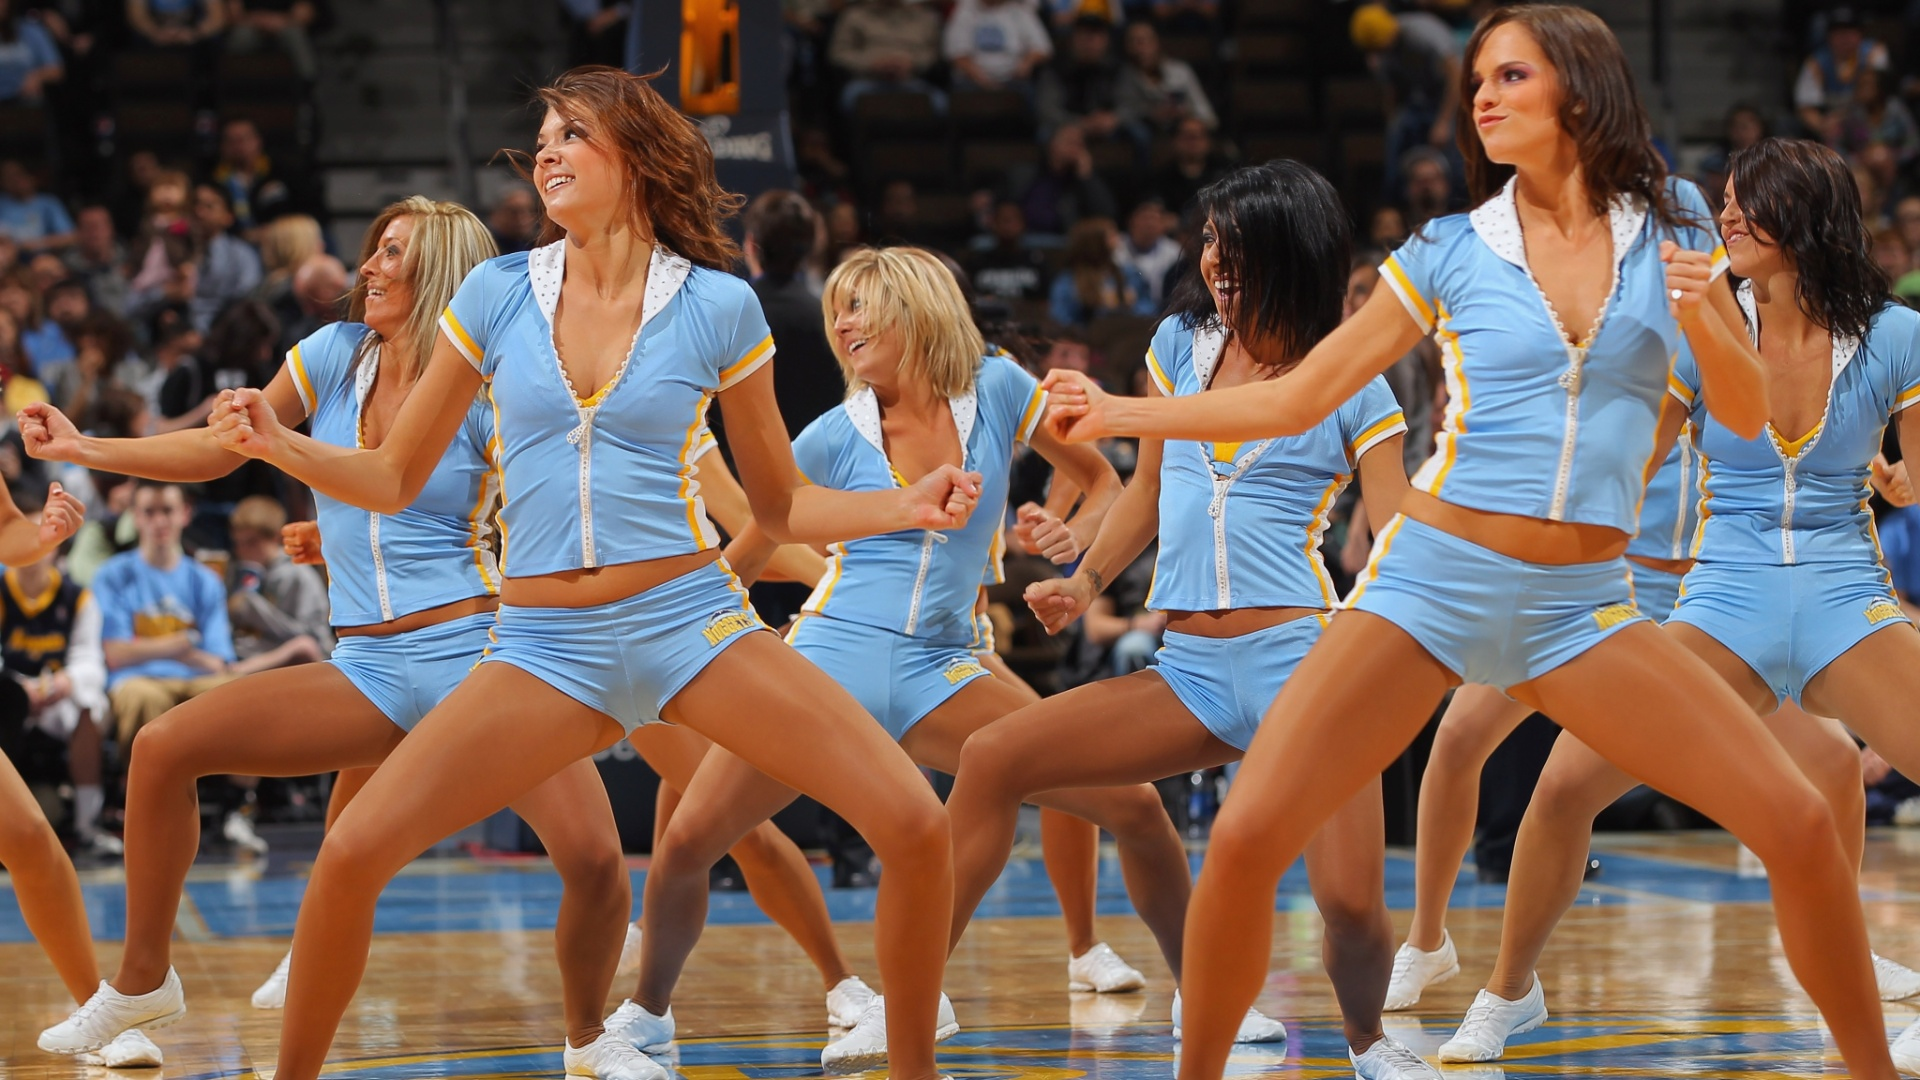 Cheerleaders fazem a festa no intervalo da partida entre New Orleans Hornets v Denver Nuggets 